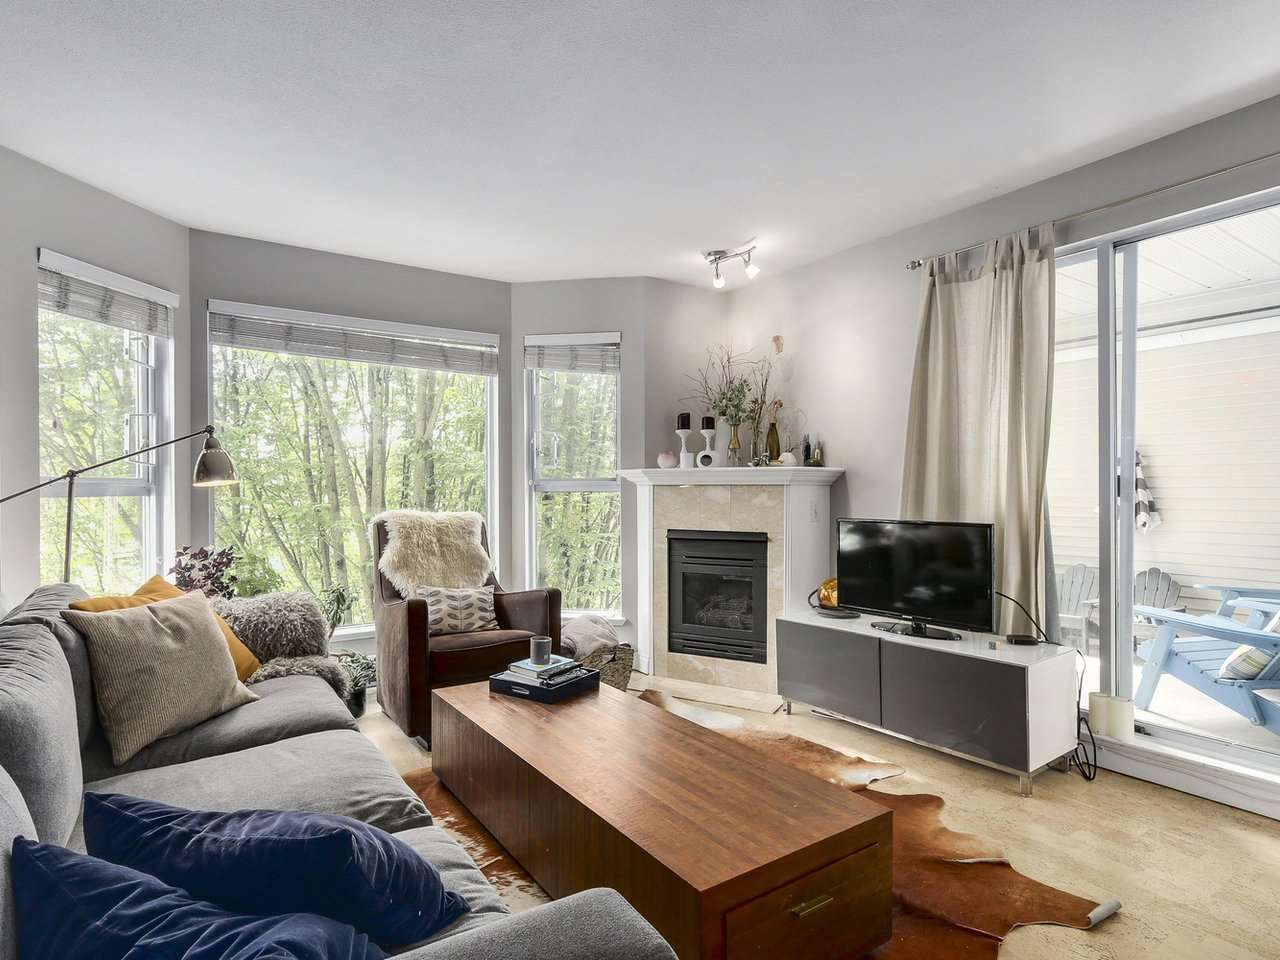 Photo 2: Photos: 305 225 E 19TH AVENUE in Vancouver: Main Condo for sale (Vancouver East)  : MLS®# R2173702